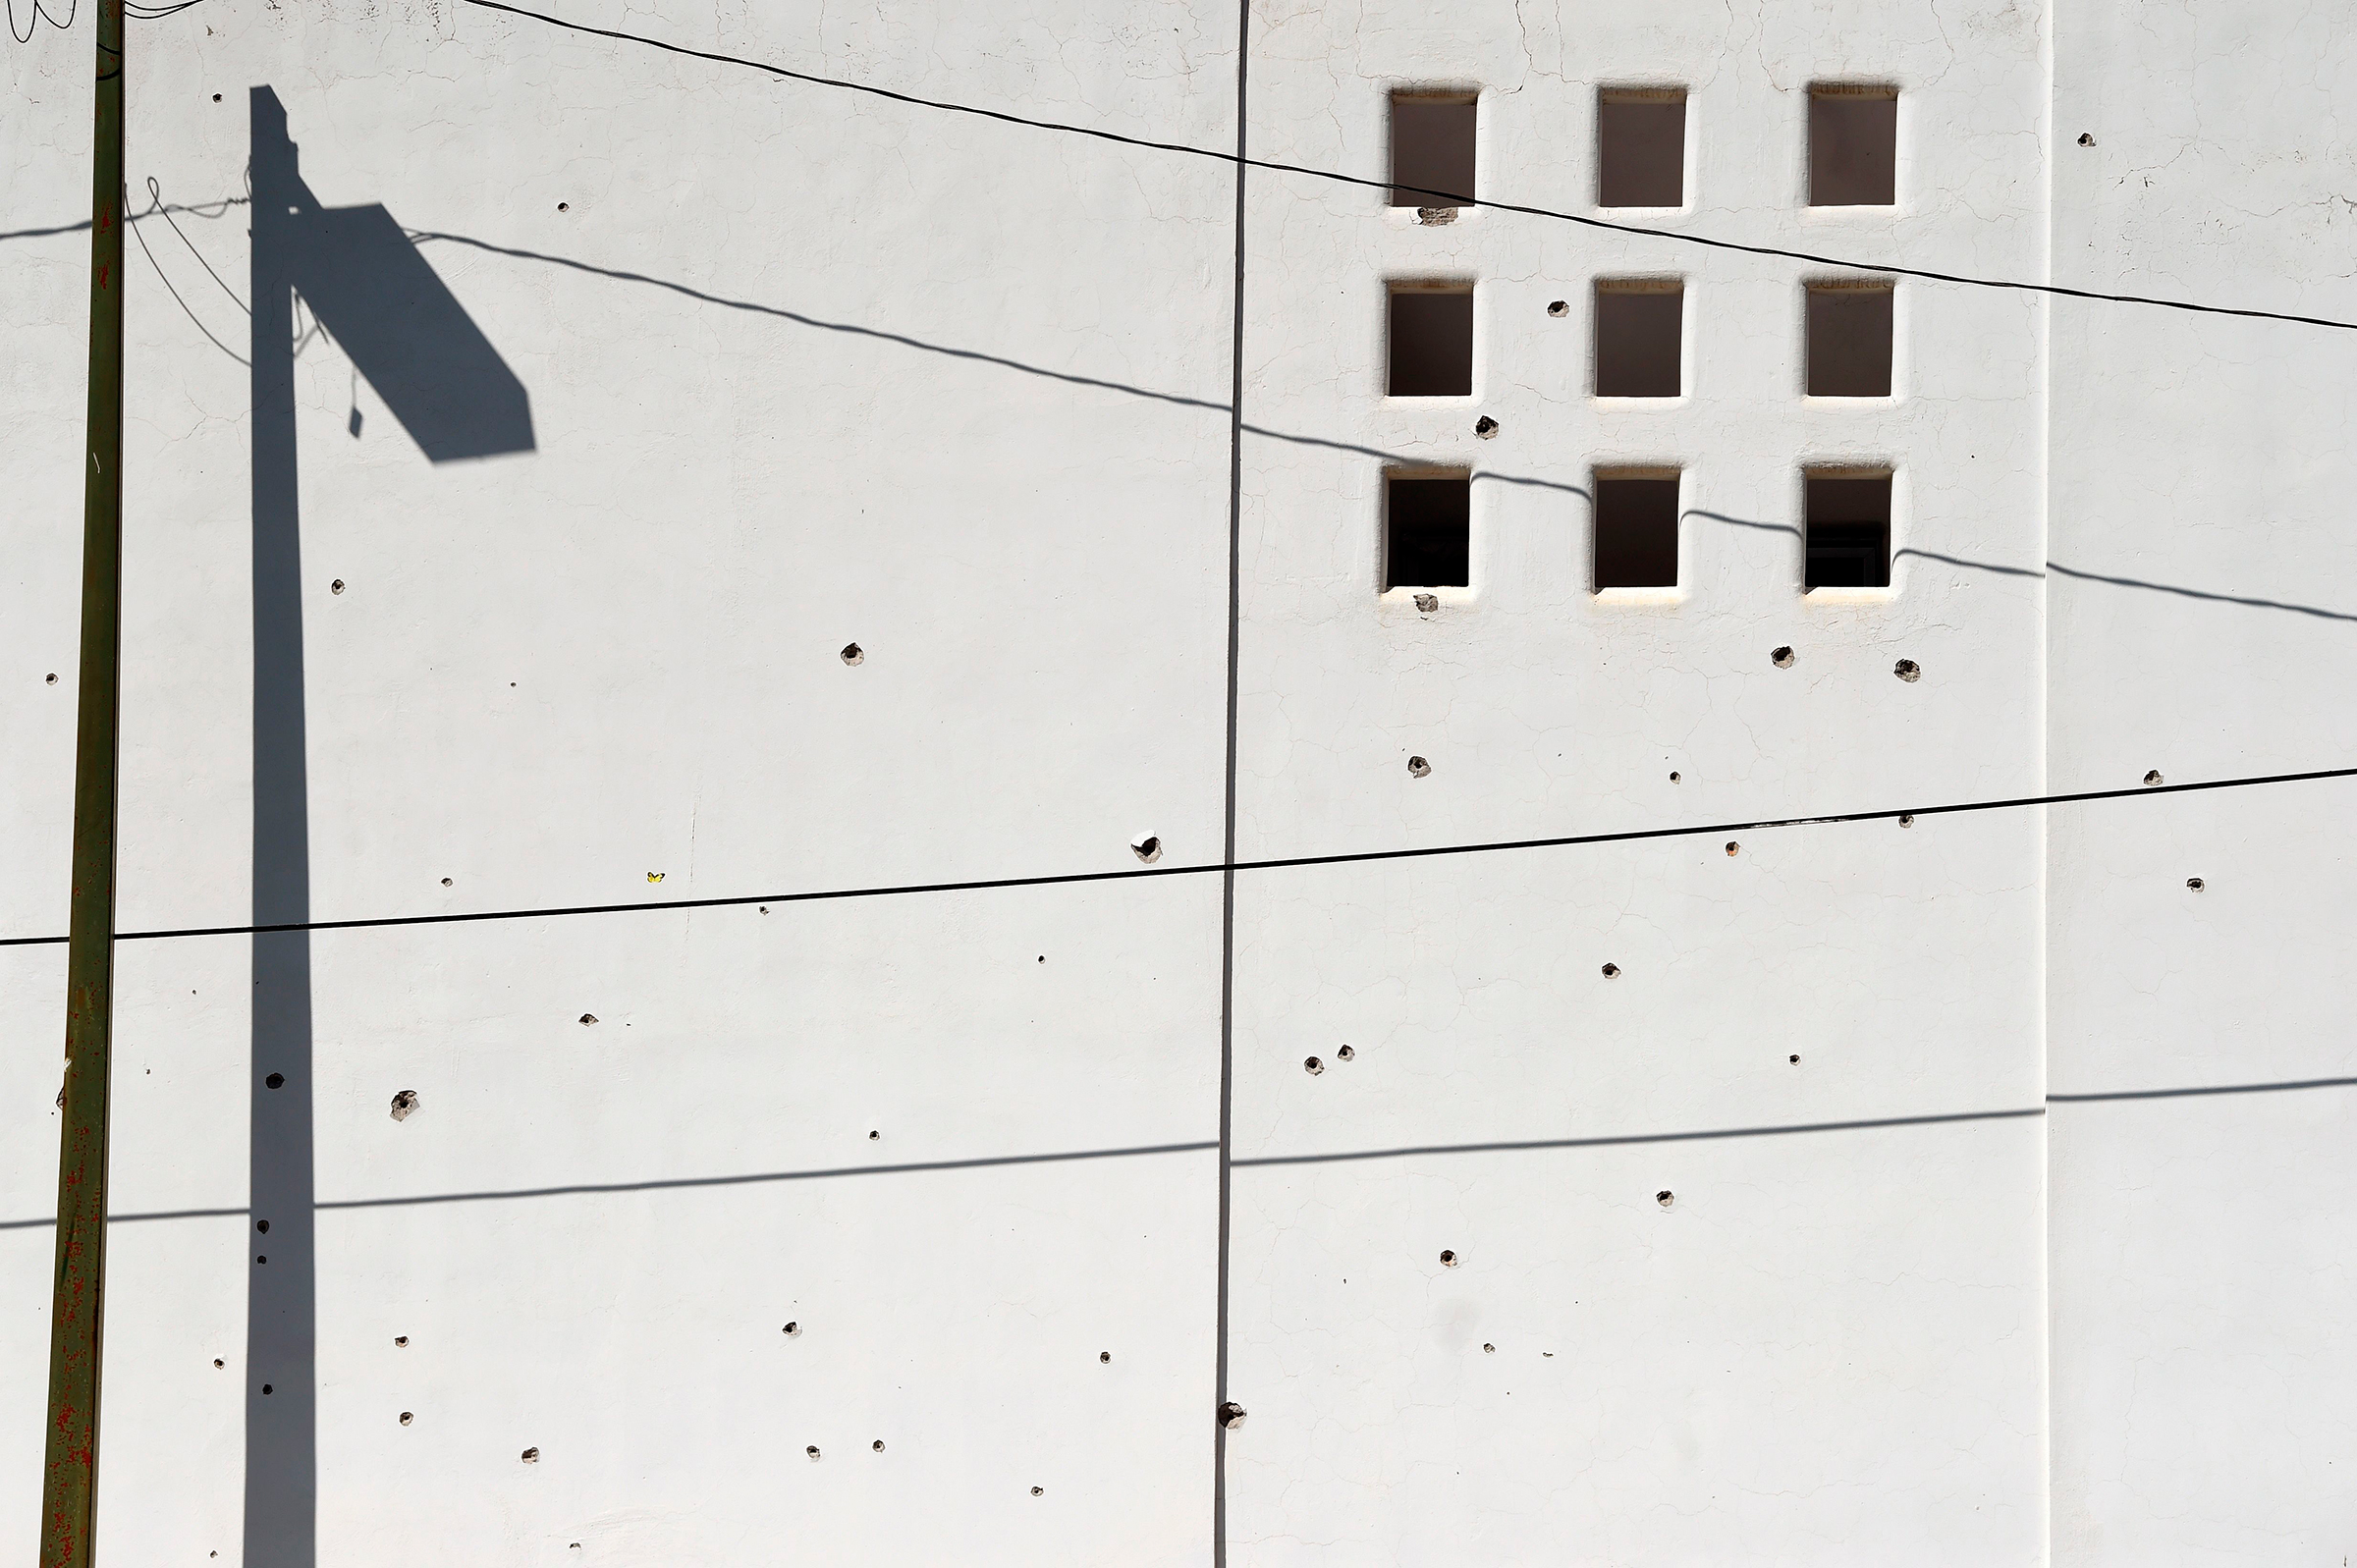 A wall is pockmarked with bullet holes in Culiacan on Oct. 18.